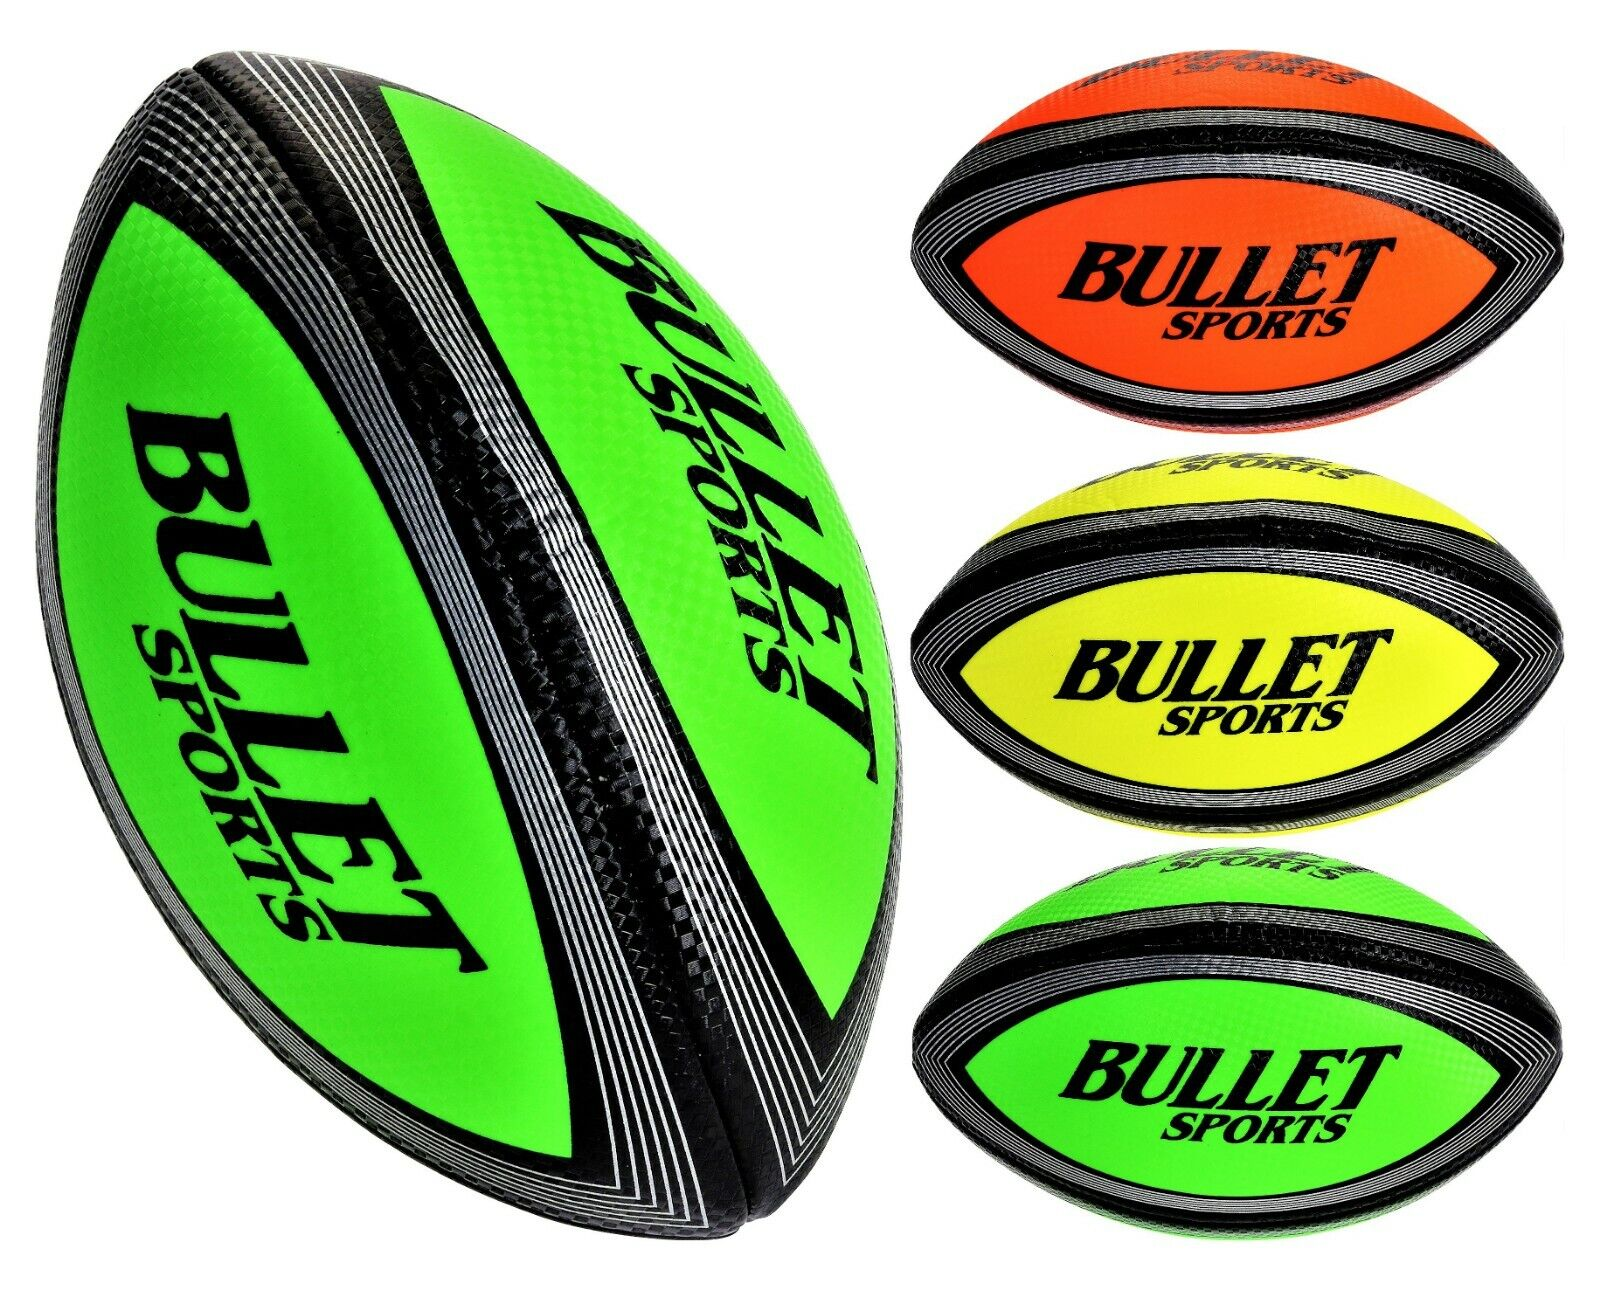 Rugby Ball Leder Rugbyball Rugbypille Spielball Sportball Football Training Ball